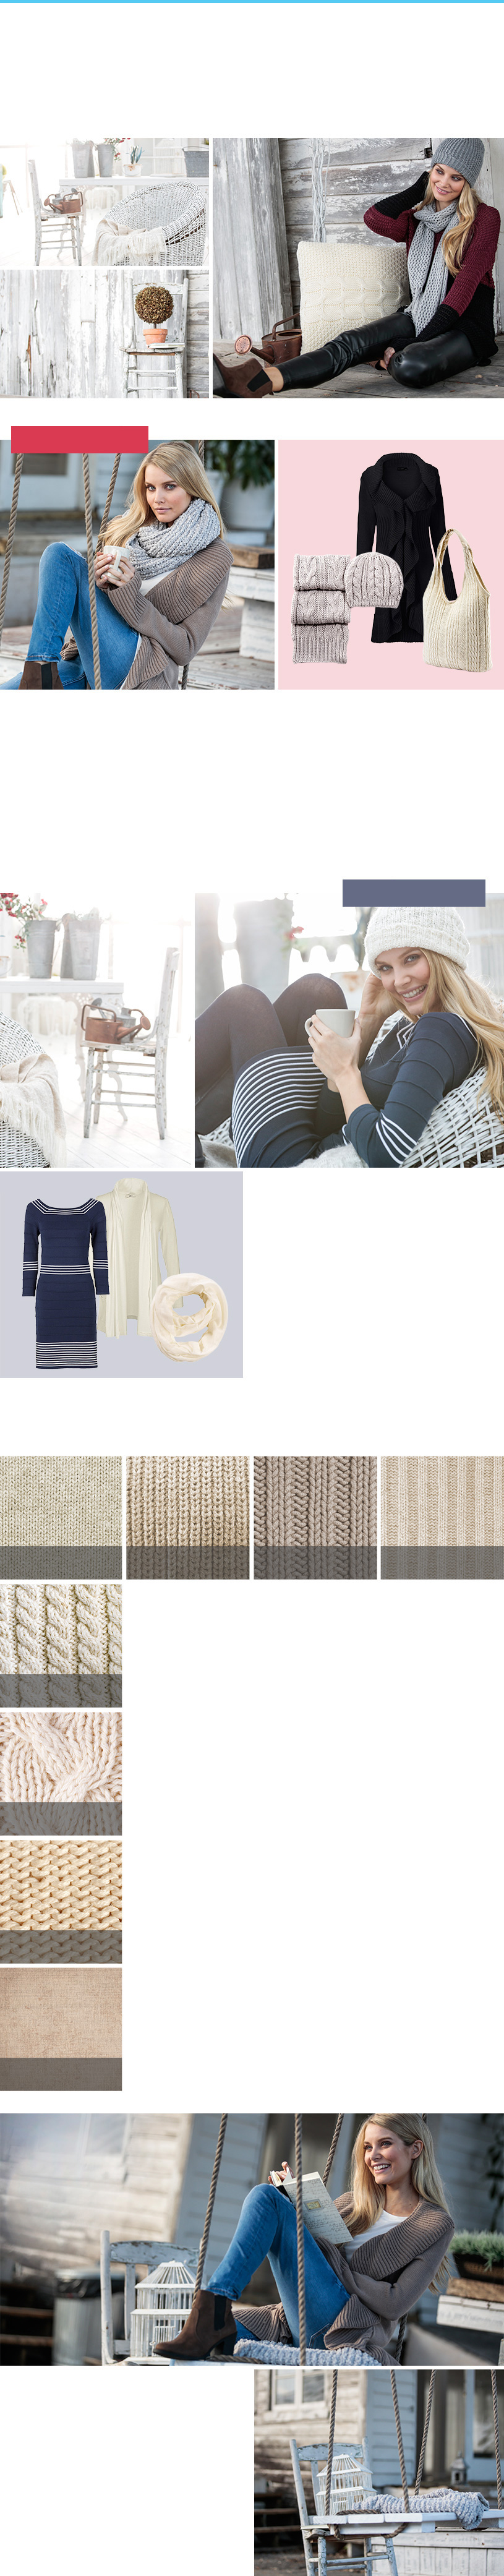 teaser/bpit/freies_layout/IT_RK_STIL_Strickguide_4715_2.jpg